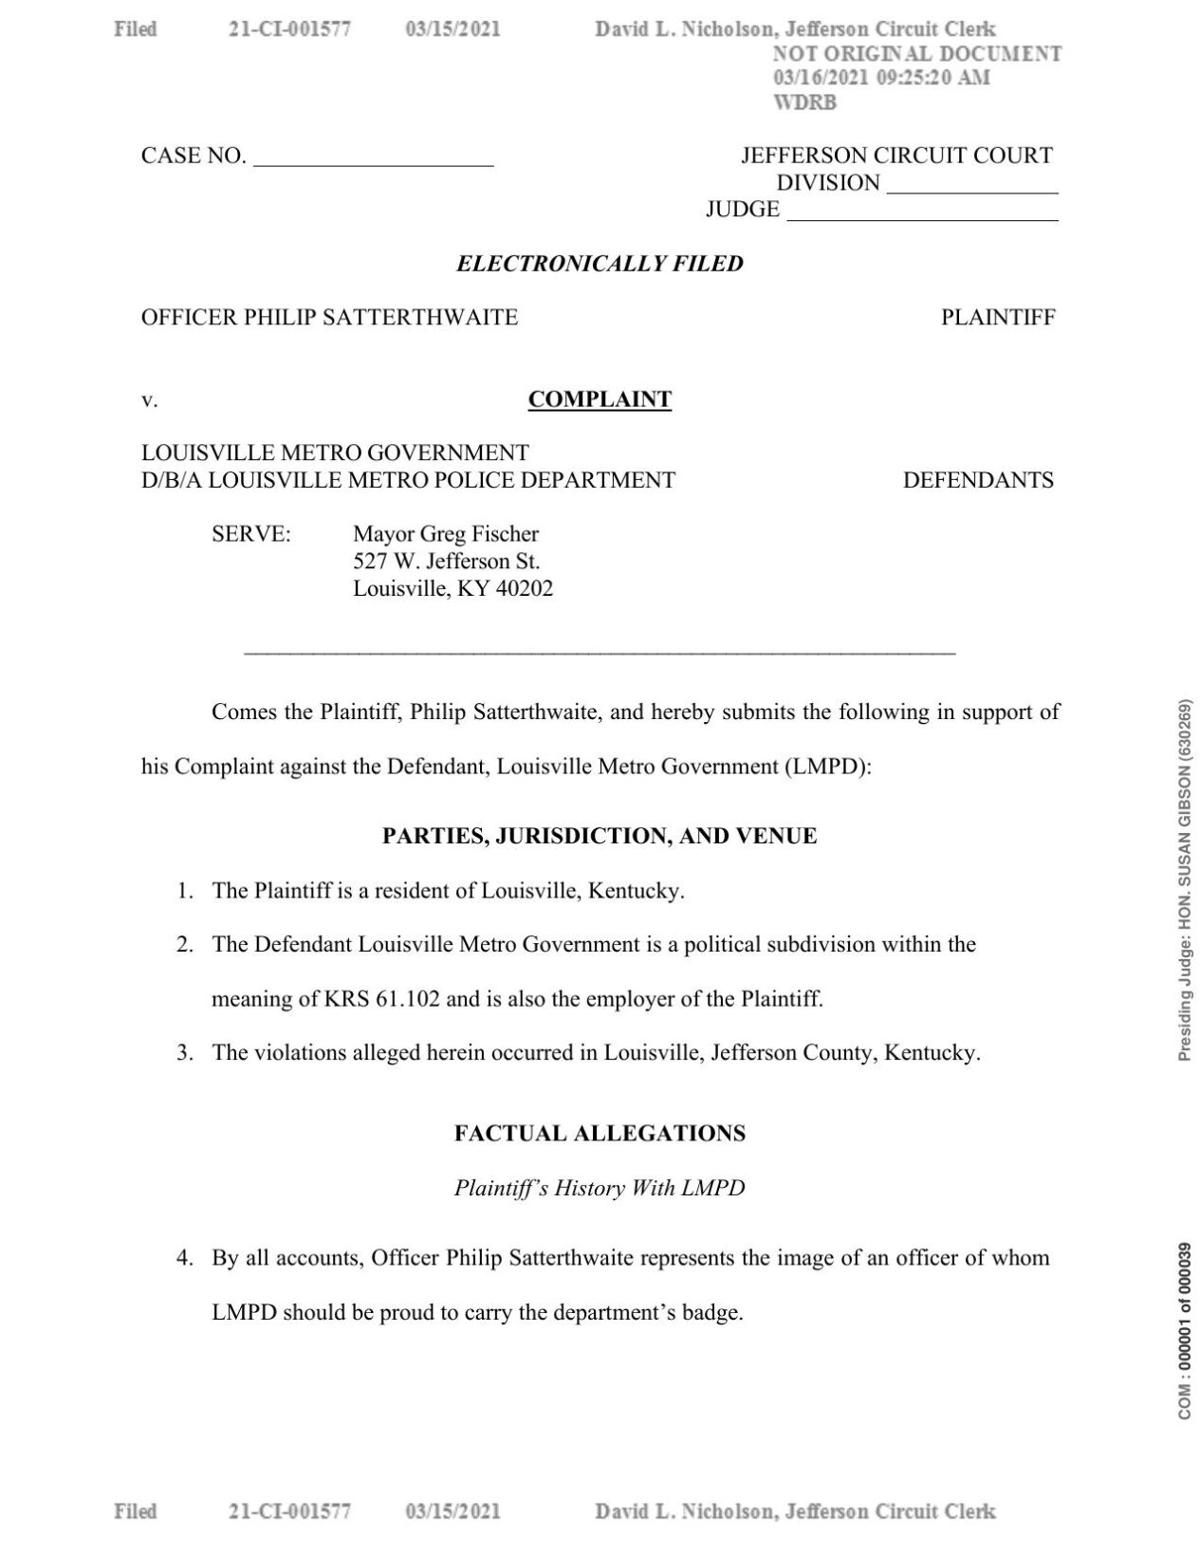 LAWSUIT: Satterthwaite vs LMPD